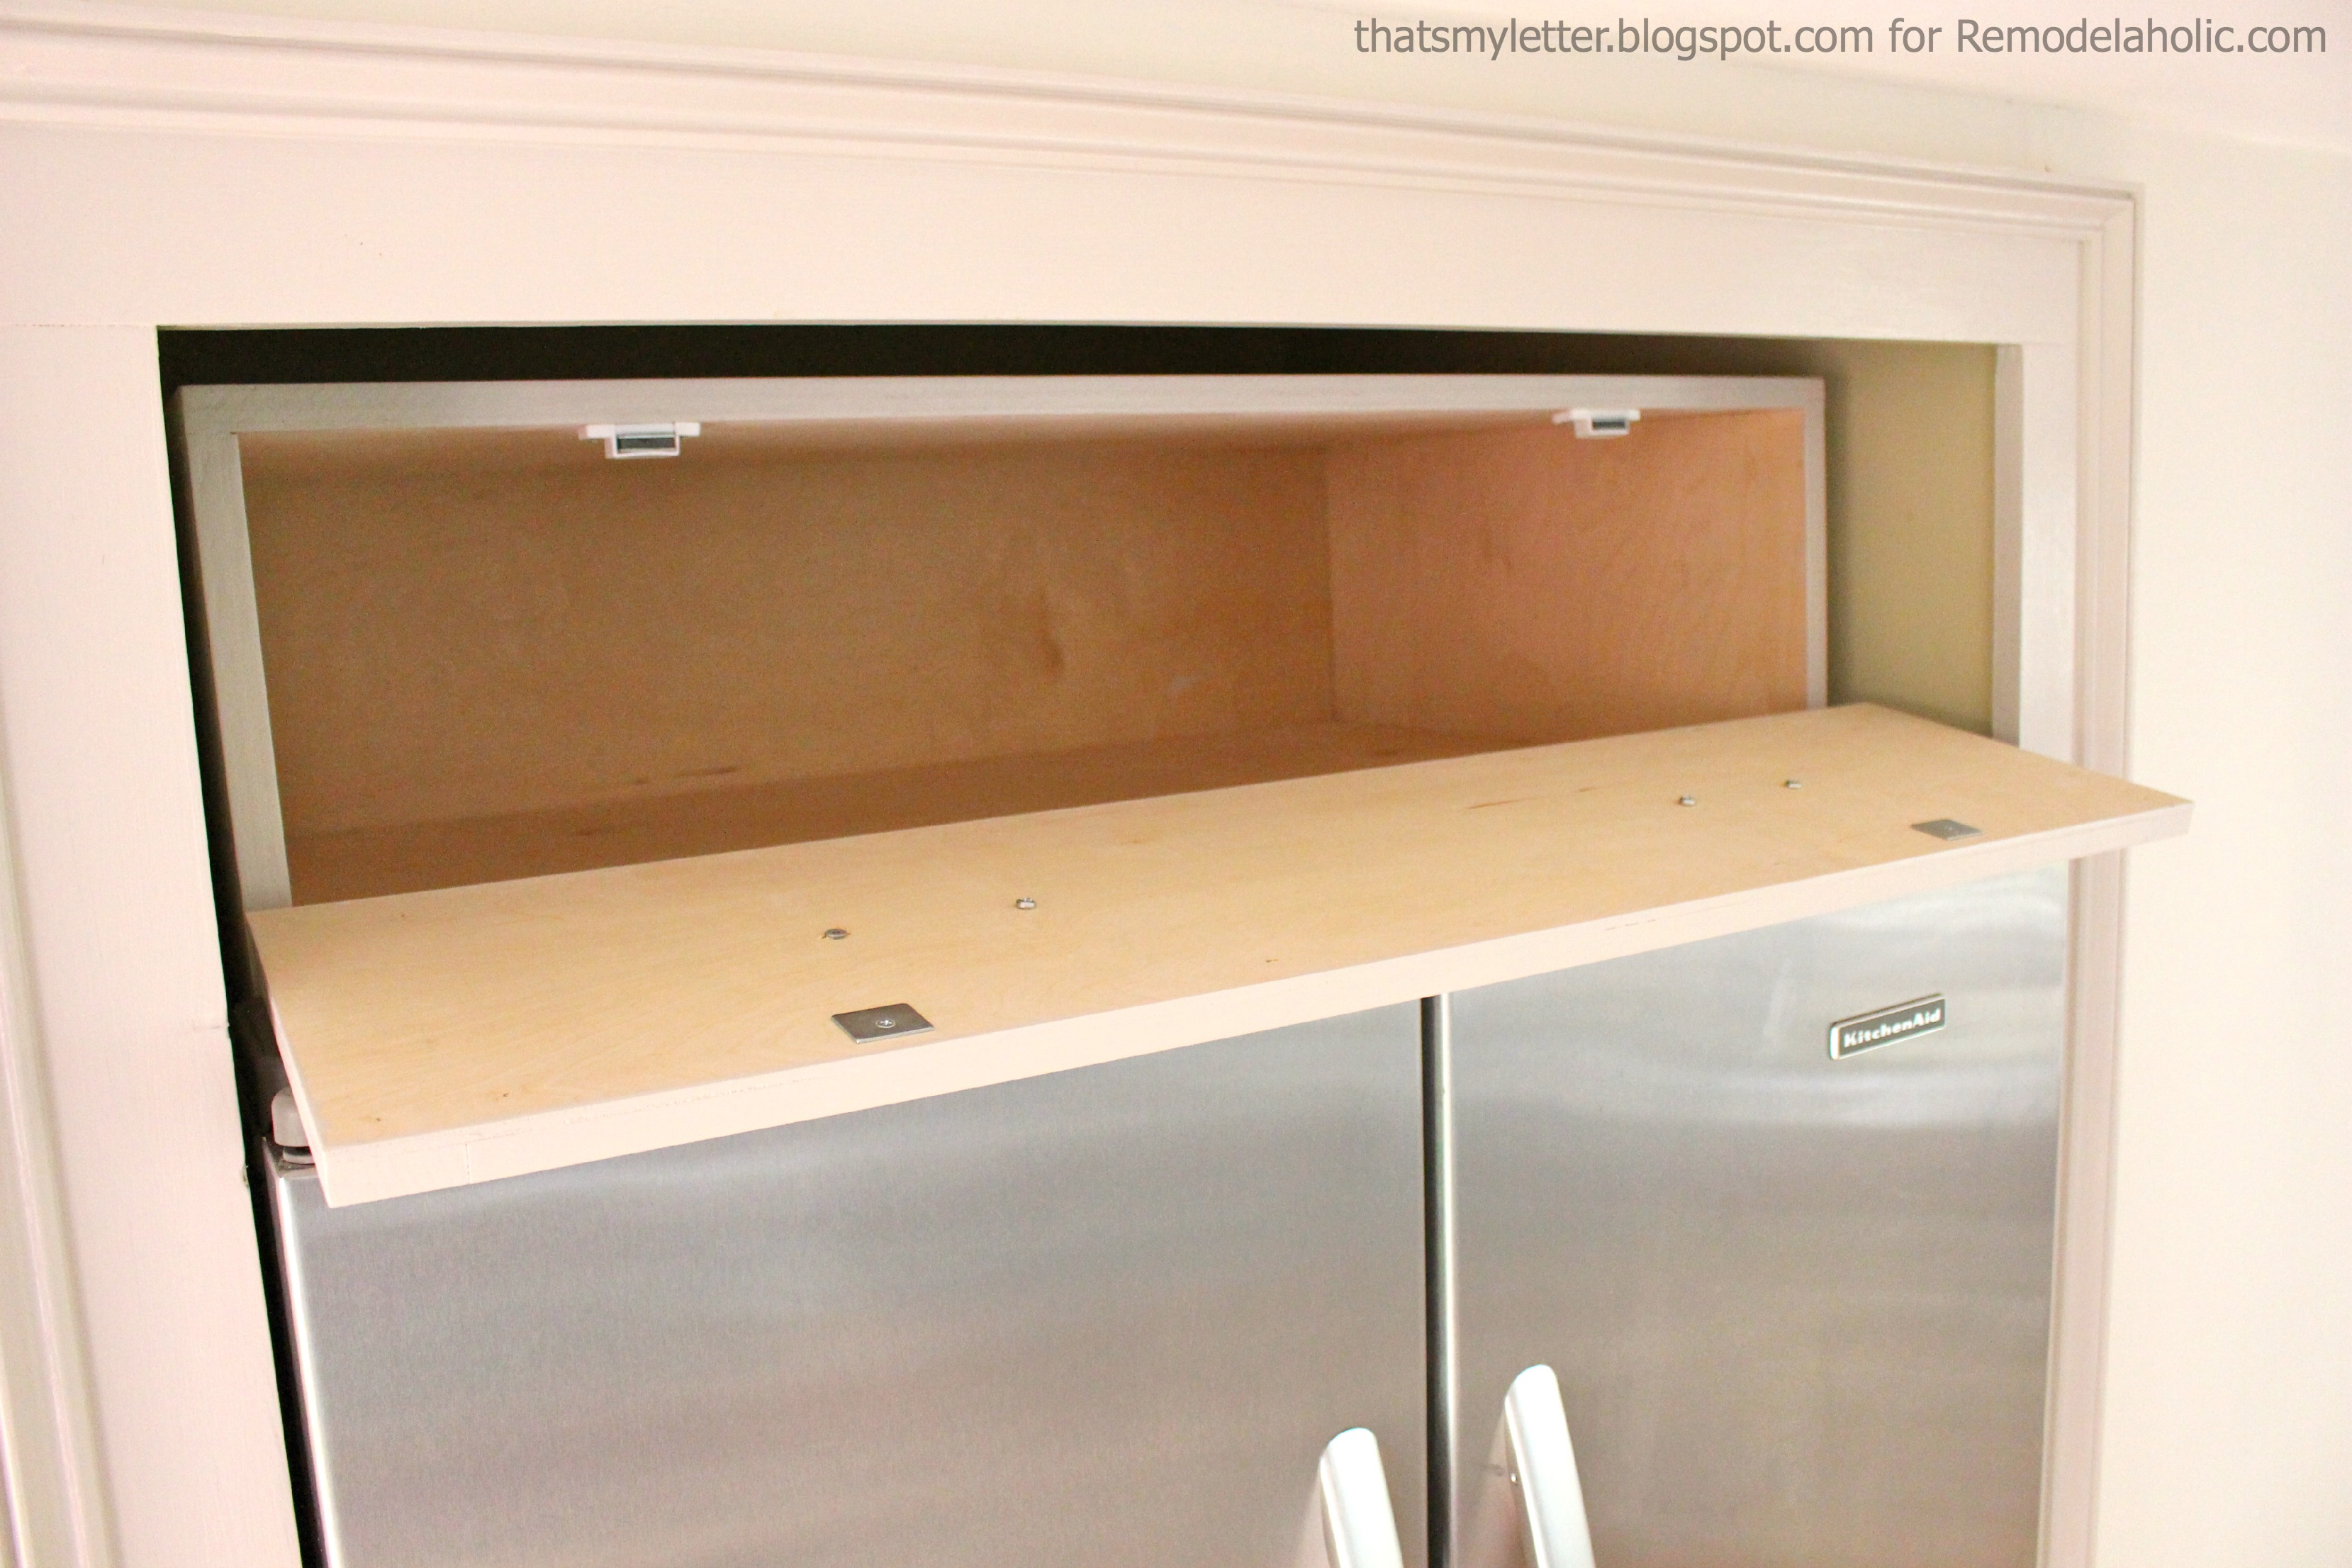 Superieur Over Fridge Cabinet Intertior 2